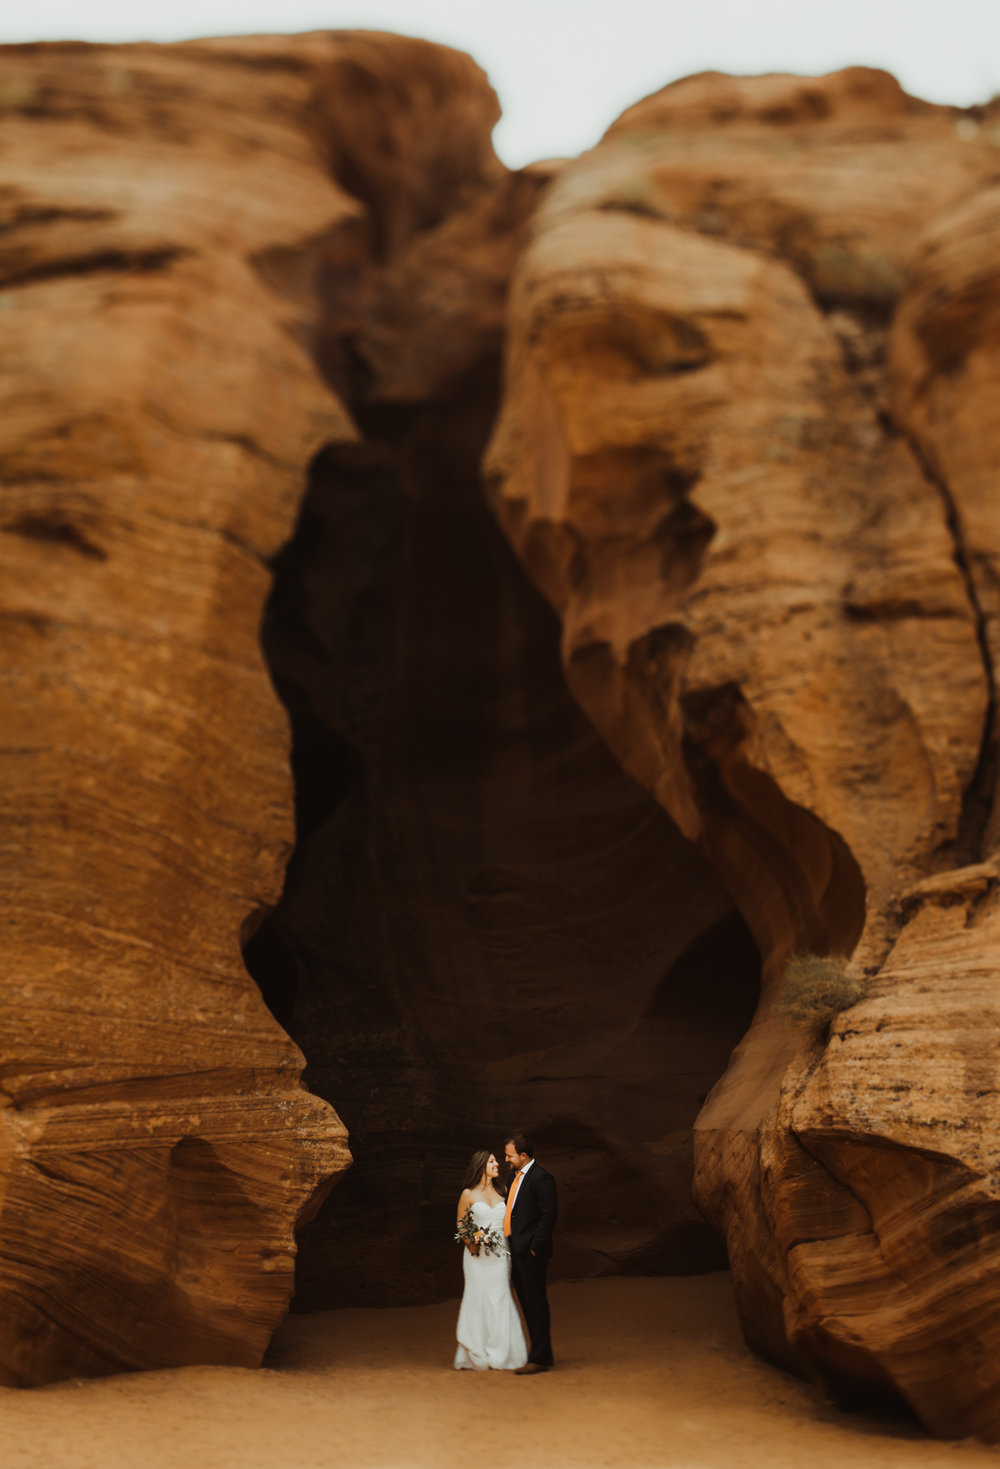 ©Isaiah + Taylor Photography - Lake Powell Elopement & Antelope Canyon & Horseshoe Bend, Page, Arizona-63.jpg